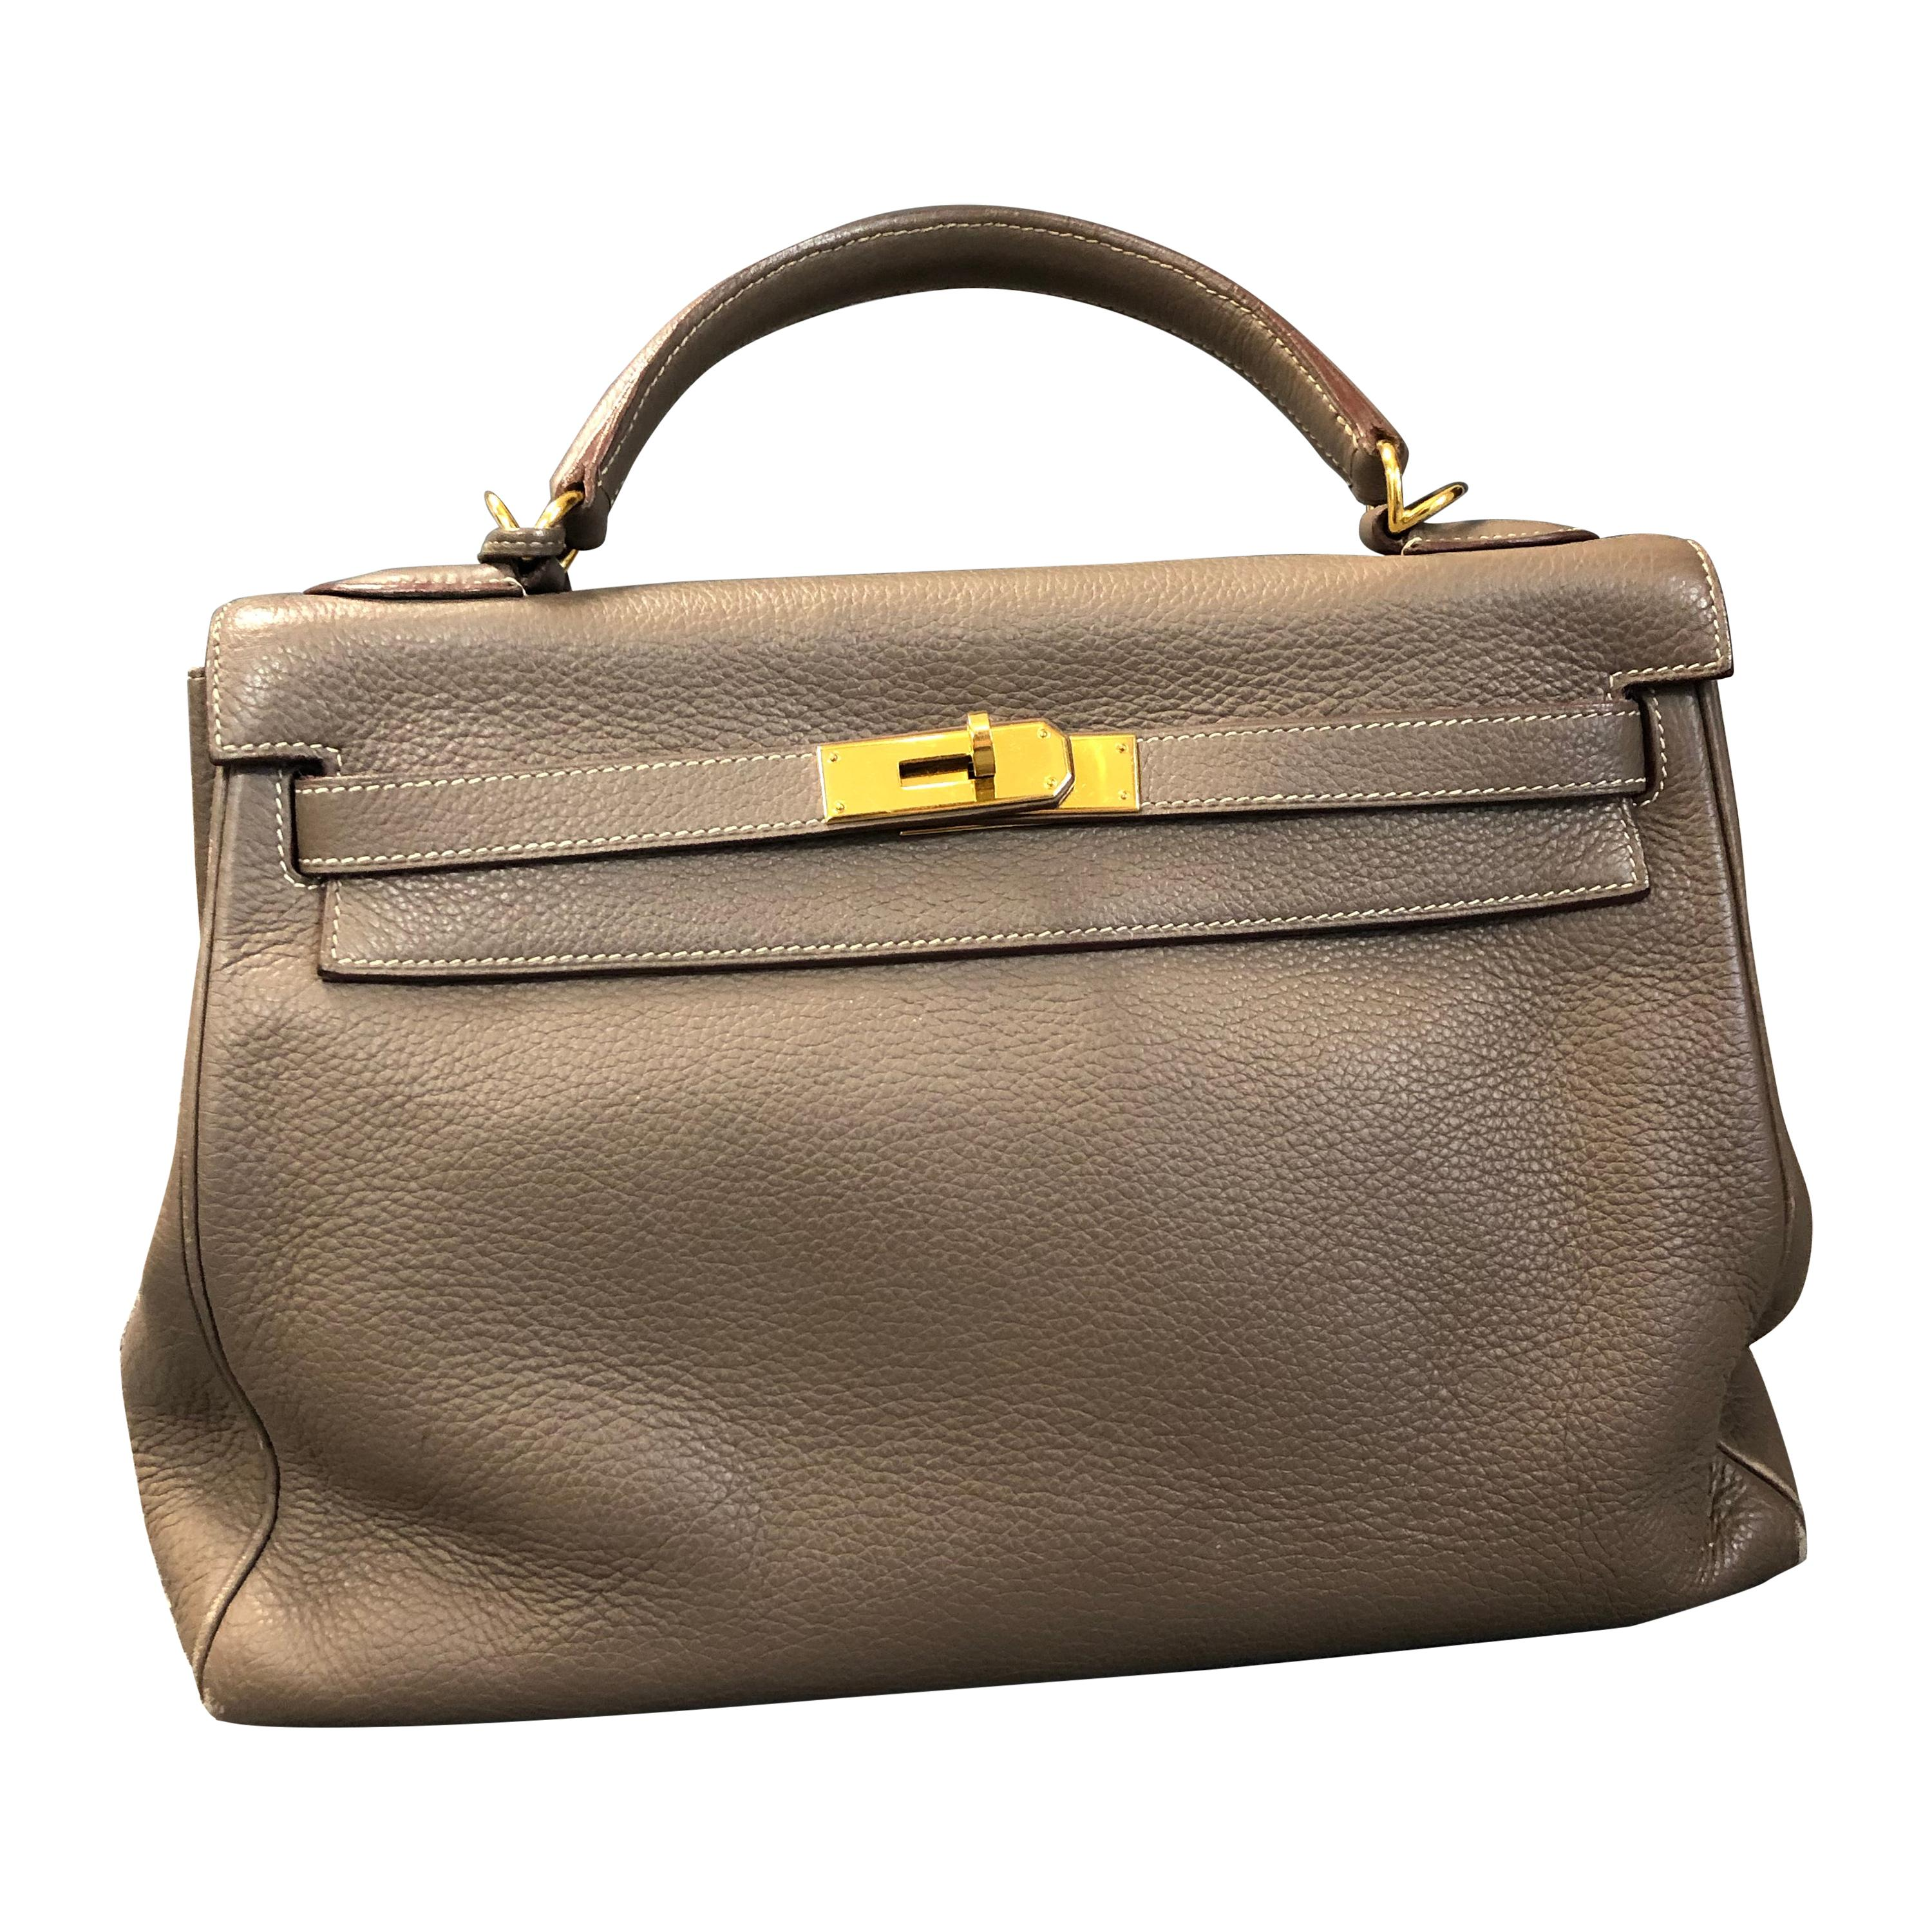 Hermès Taupe Epsom Leather Kelly Sellier 32 Bag Excellent Condition, 2005